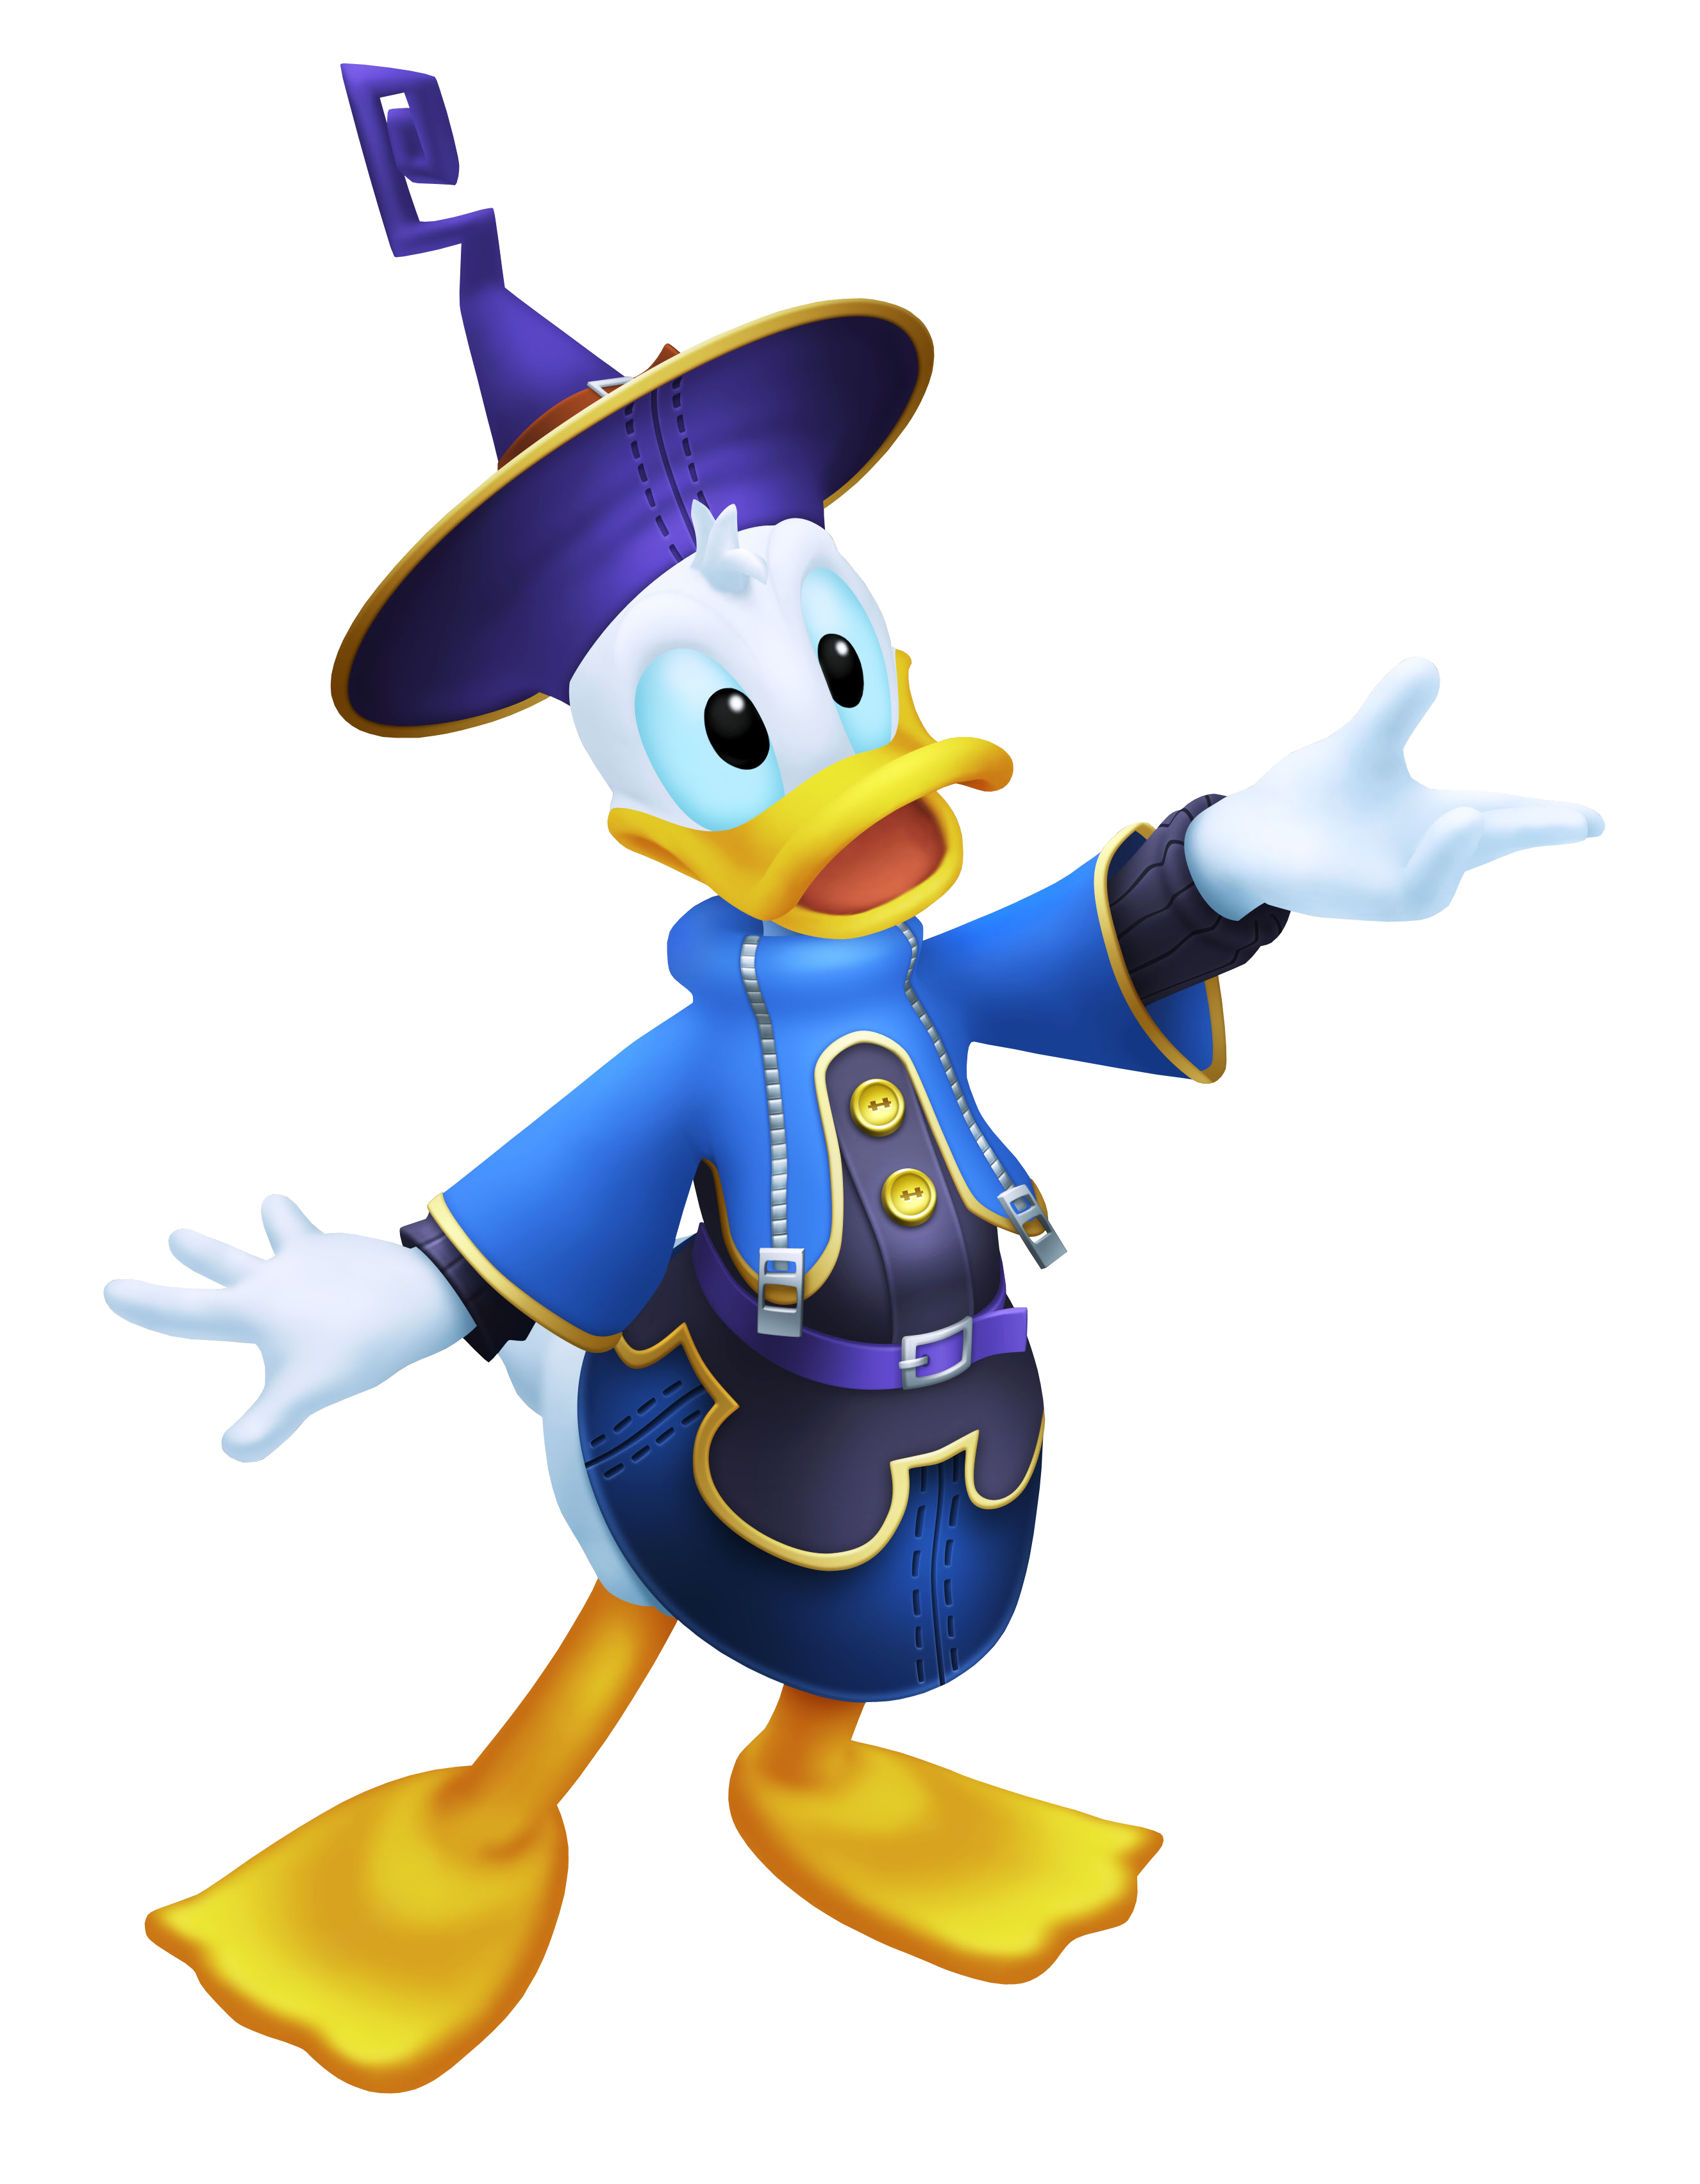 Donald duck and daisy. Fight clipart aggression